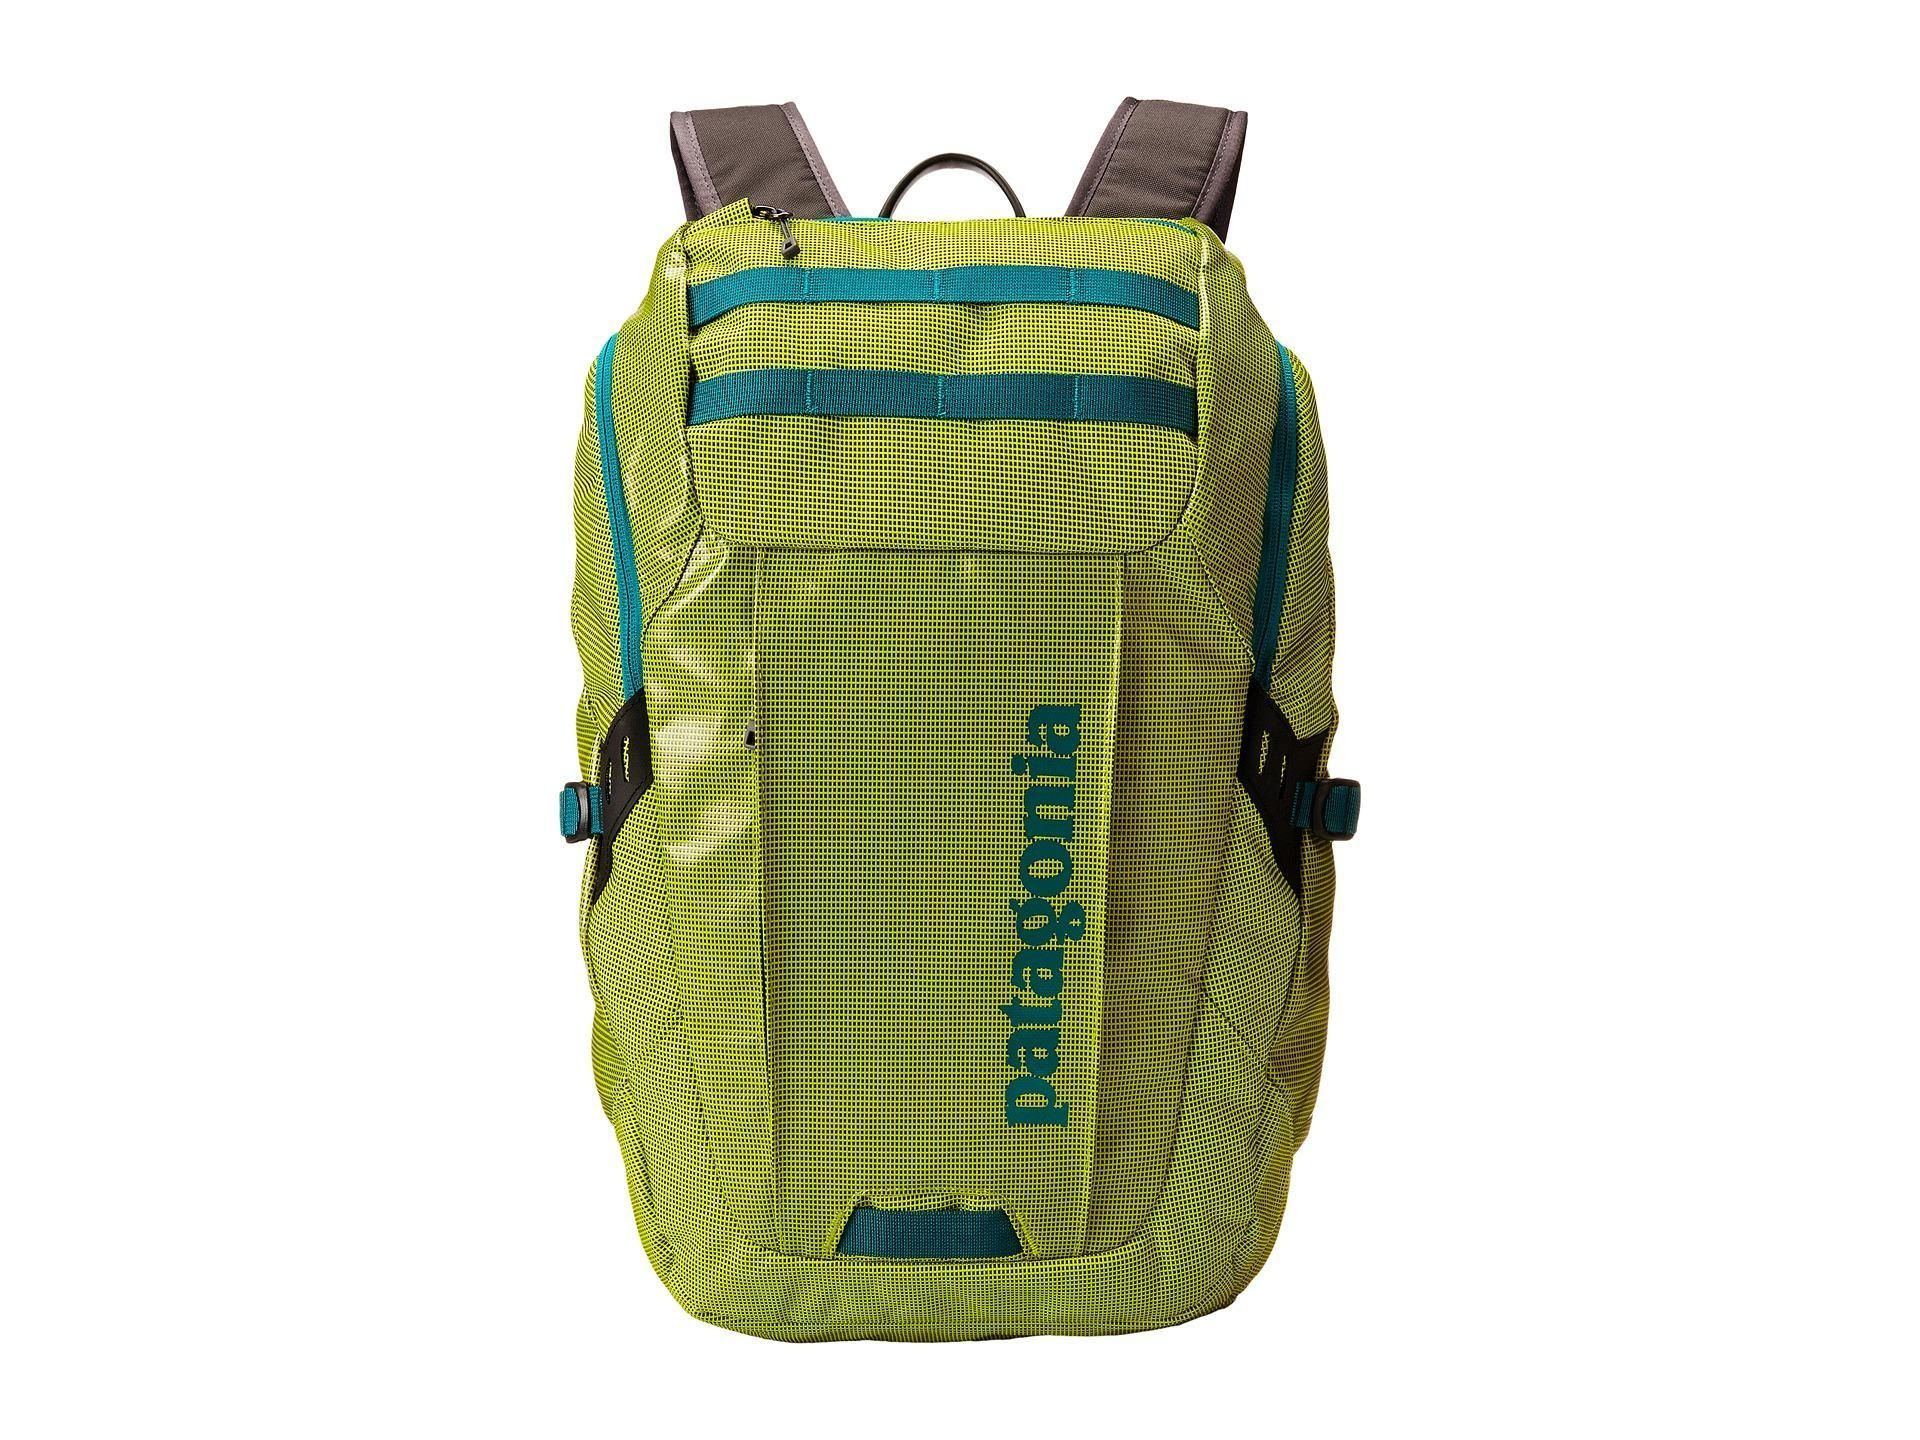 Patagonia Black Hole Pack 25L Brought to you by Avarsha